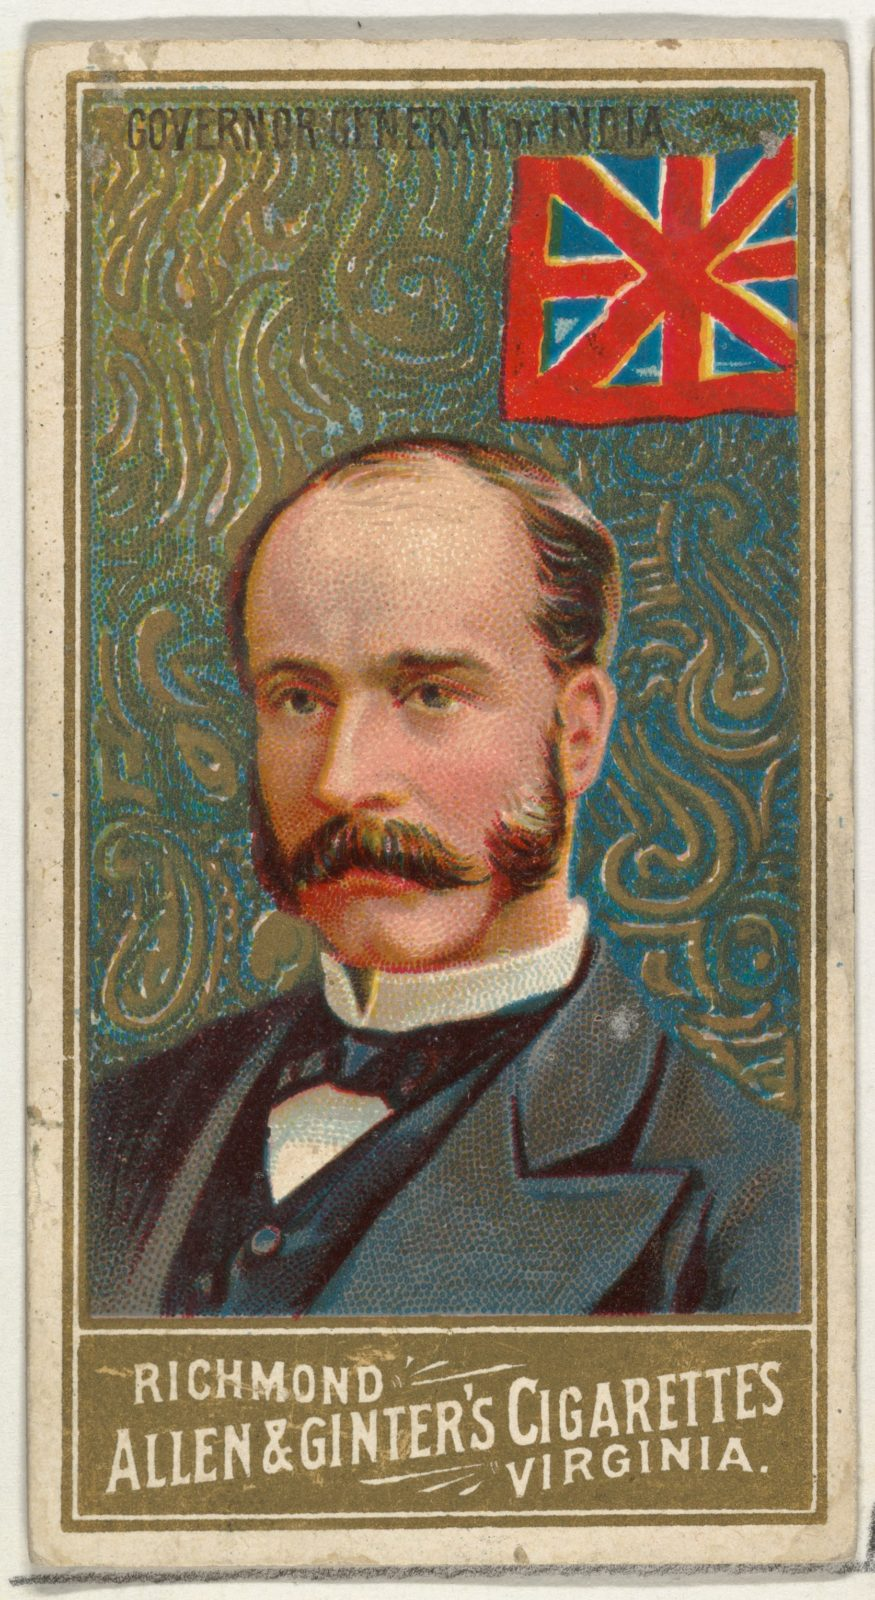 Governor General of India, from World's Sovereigns series (N34) for Allen & Ginter Cigarettes